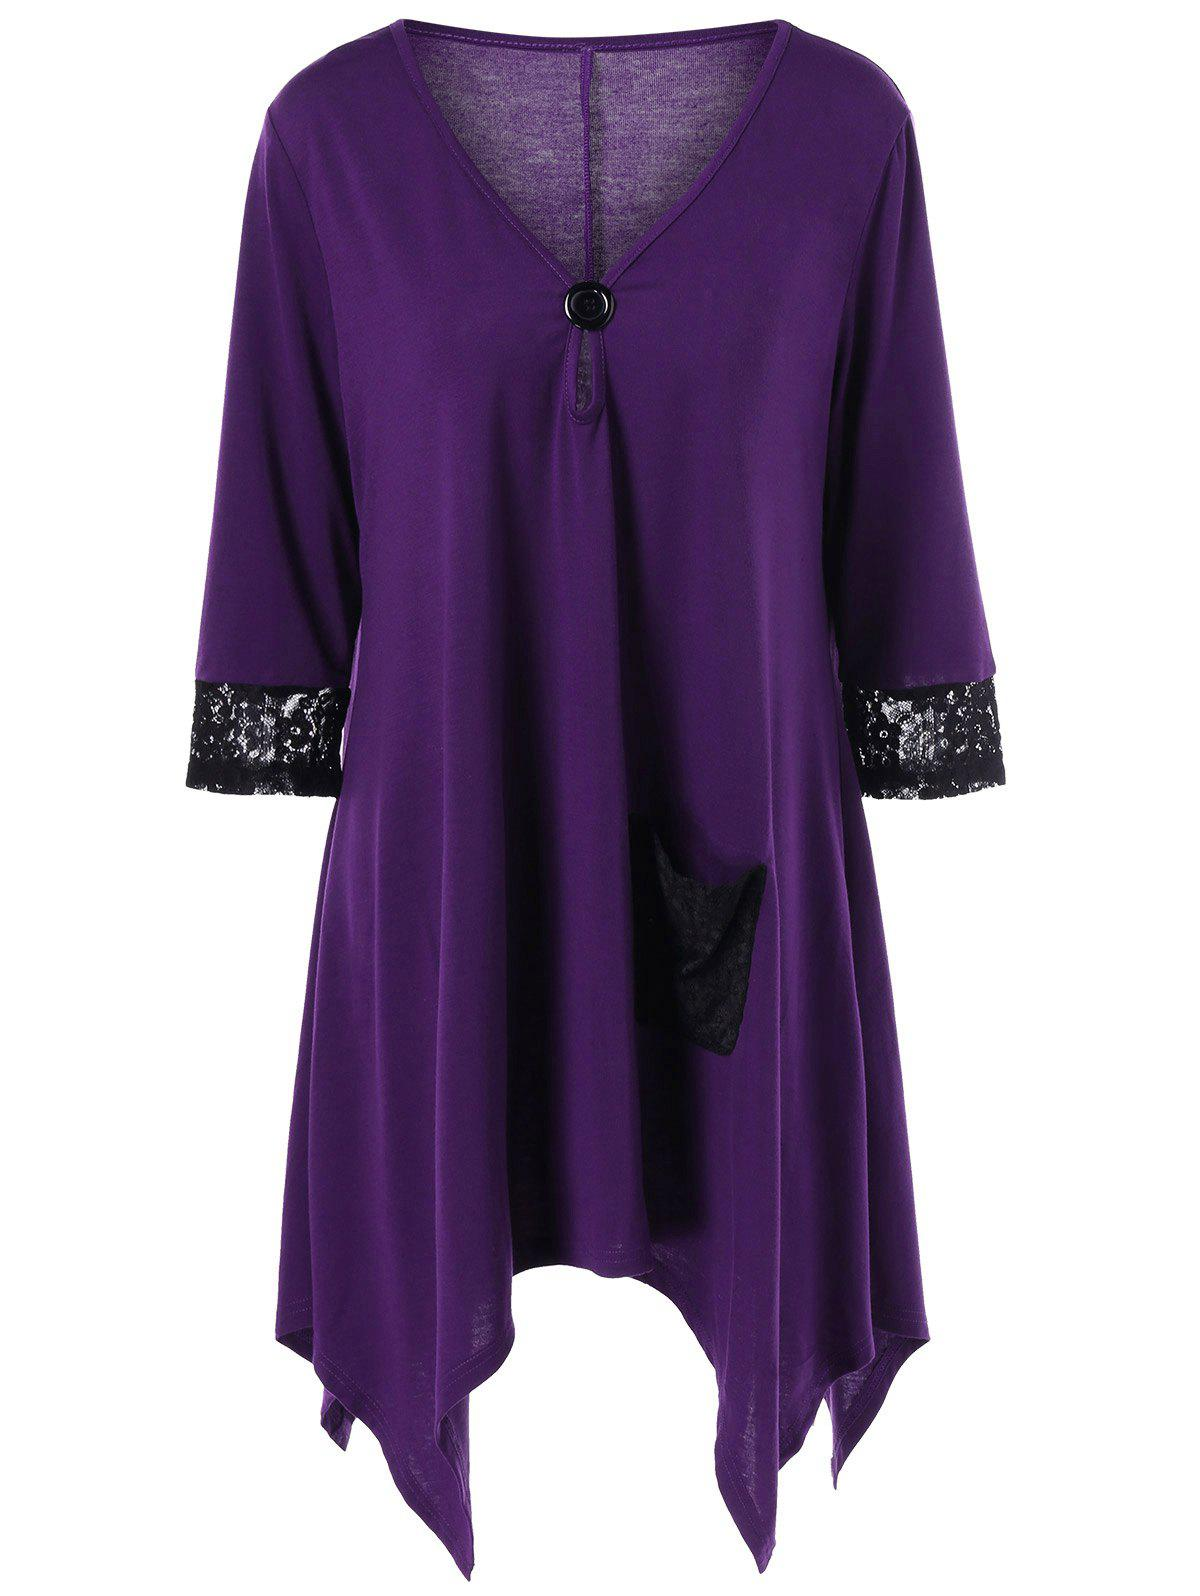 Plus Size Lace Insert Asymmetric V Neck T-Shirt - PURPLE XL